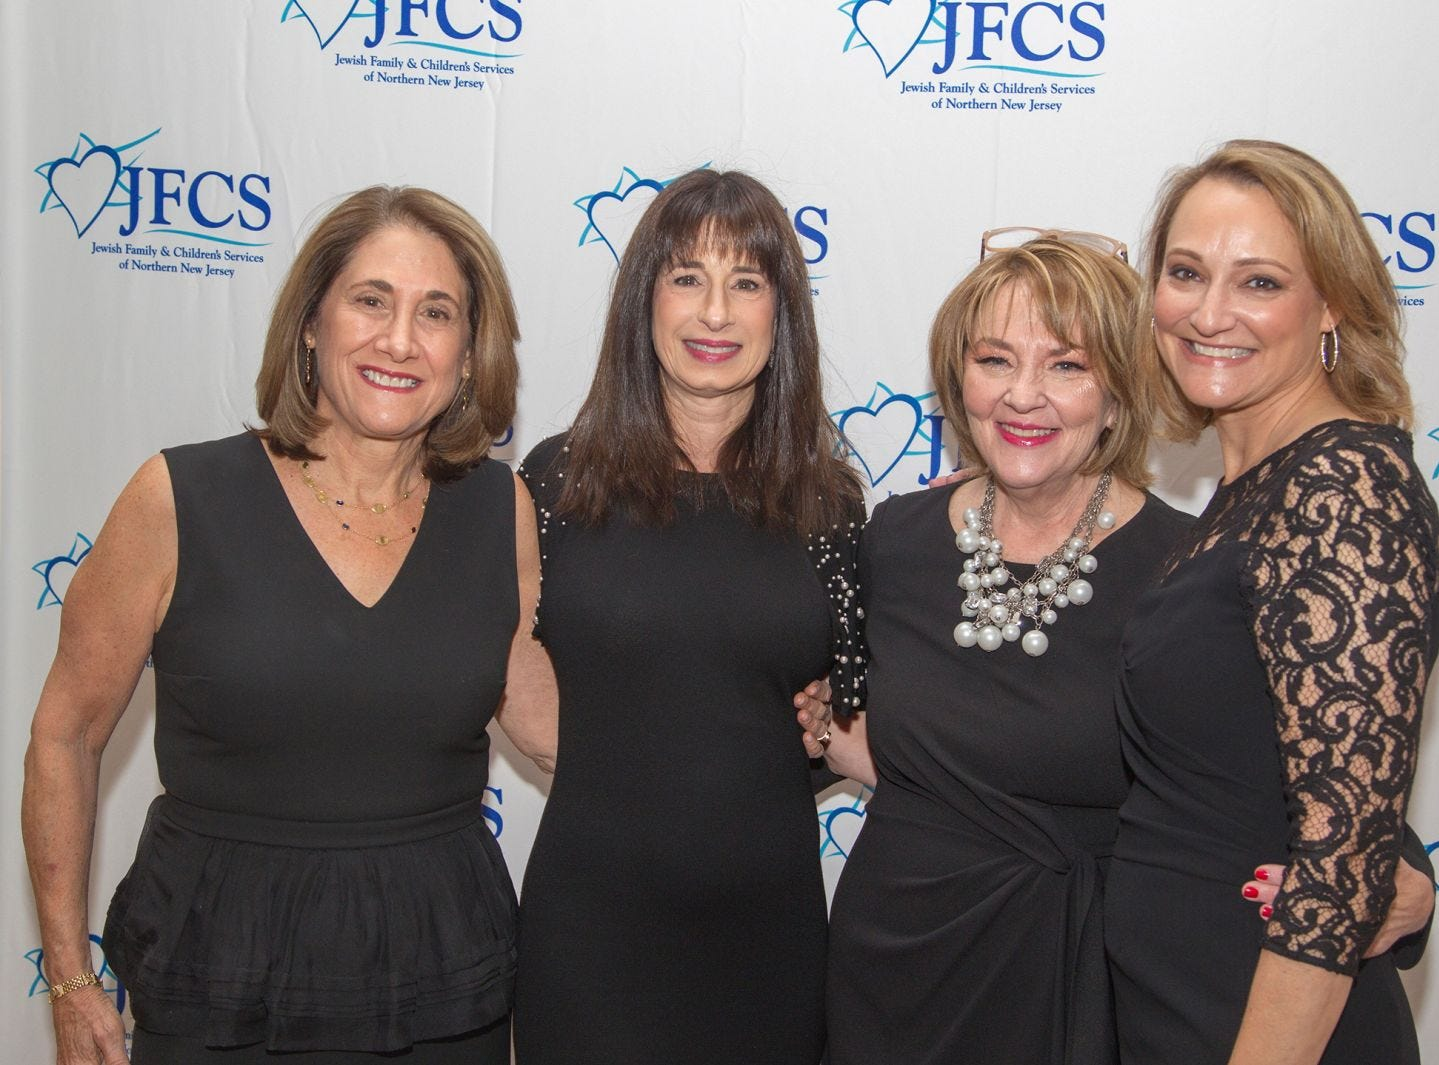 Sue Ann Levin, Suzette Diamond, Susan Greenbaum, Debbie Harris. Jewish Family & Children's Services of Northern New Jersey held its annual gala at the Edgewood Country Club in River Vale. The evening honored Shira Feuerstein, Jayne Petak, and Alan Scharfstein for their leadership, support, and dedication. 11/18/2018